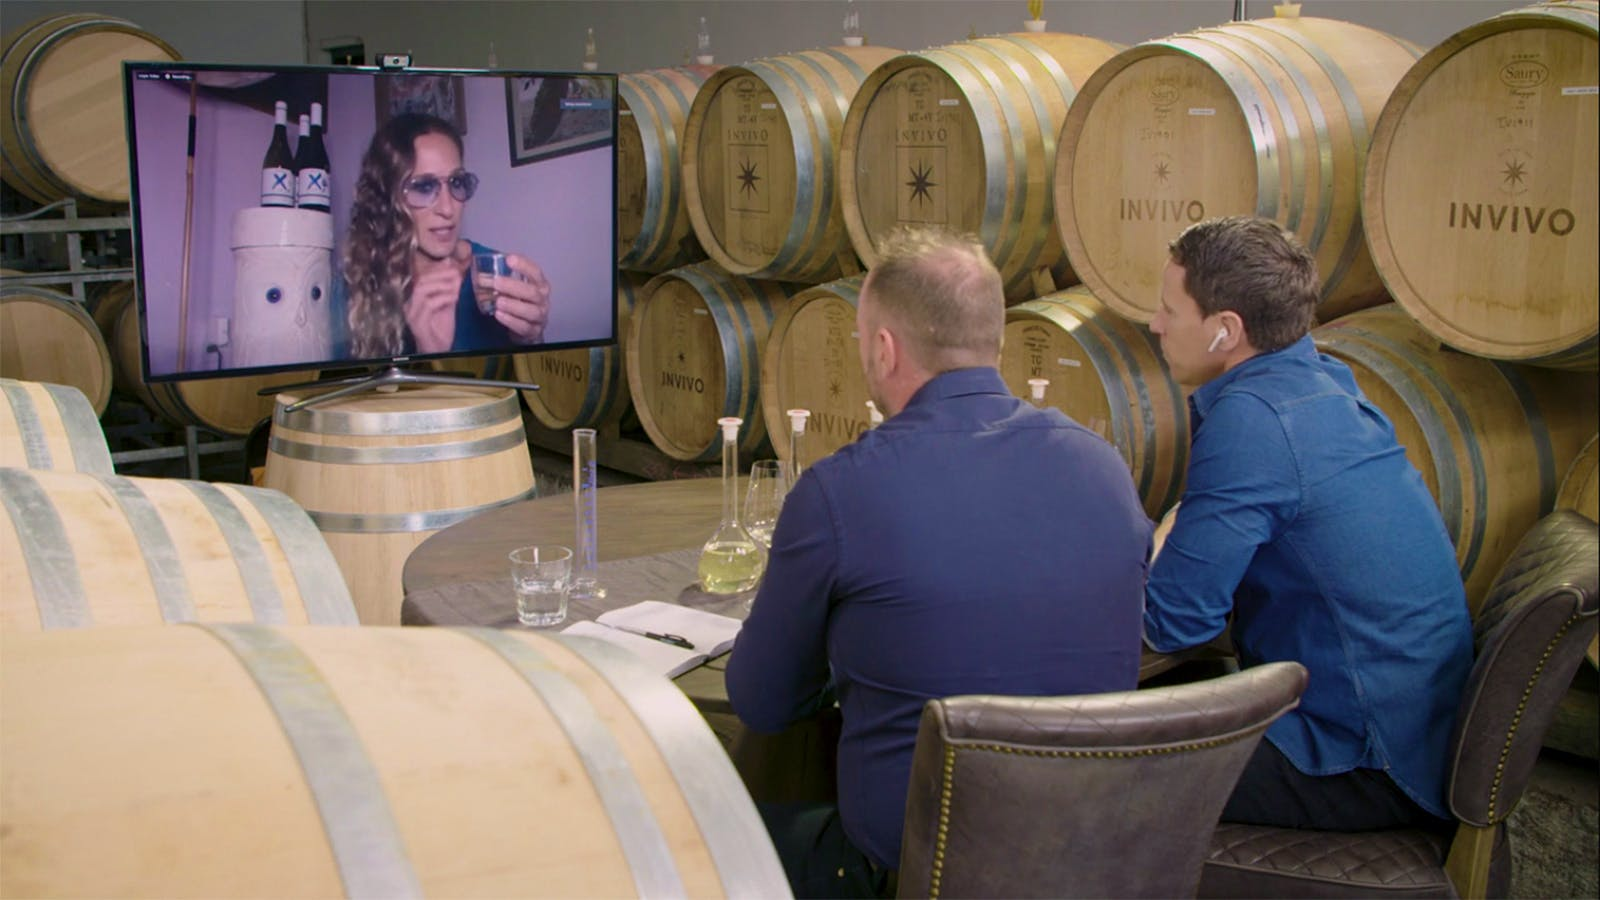 Sarah Jessica Parker, Graham Norton Take Up Home Winemaking on Zoom